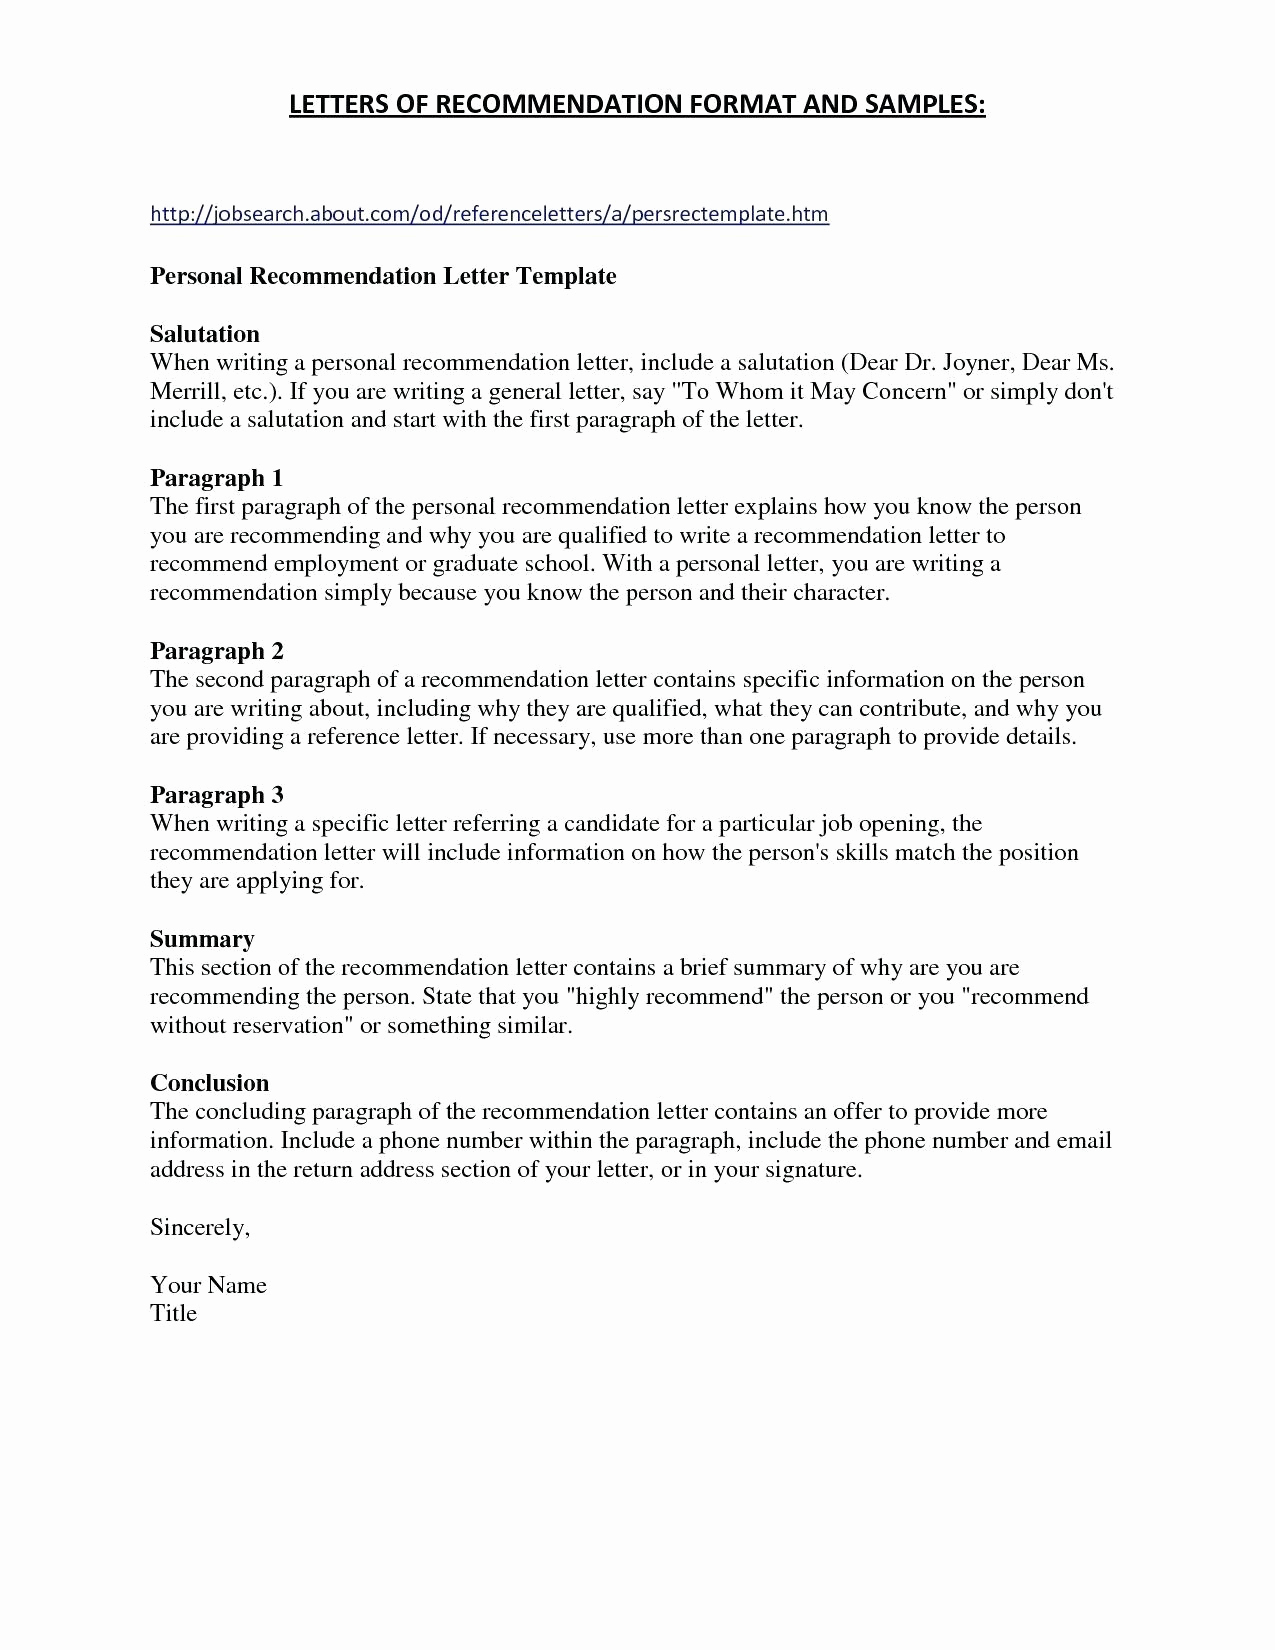 Medical Reference Letter Template - Sample Personalcharacter Reference Letter Created Using Ms Word